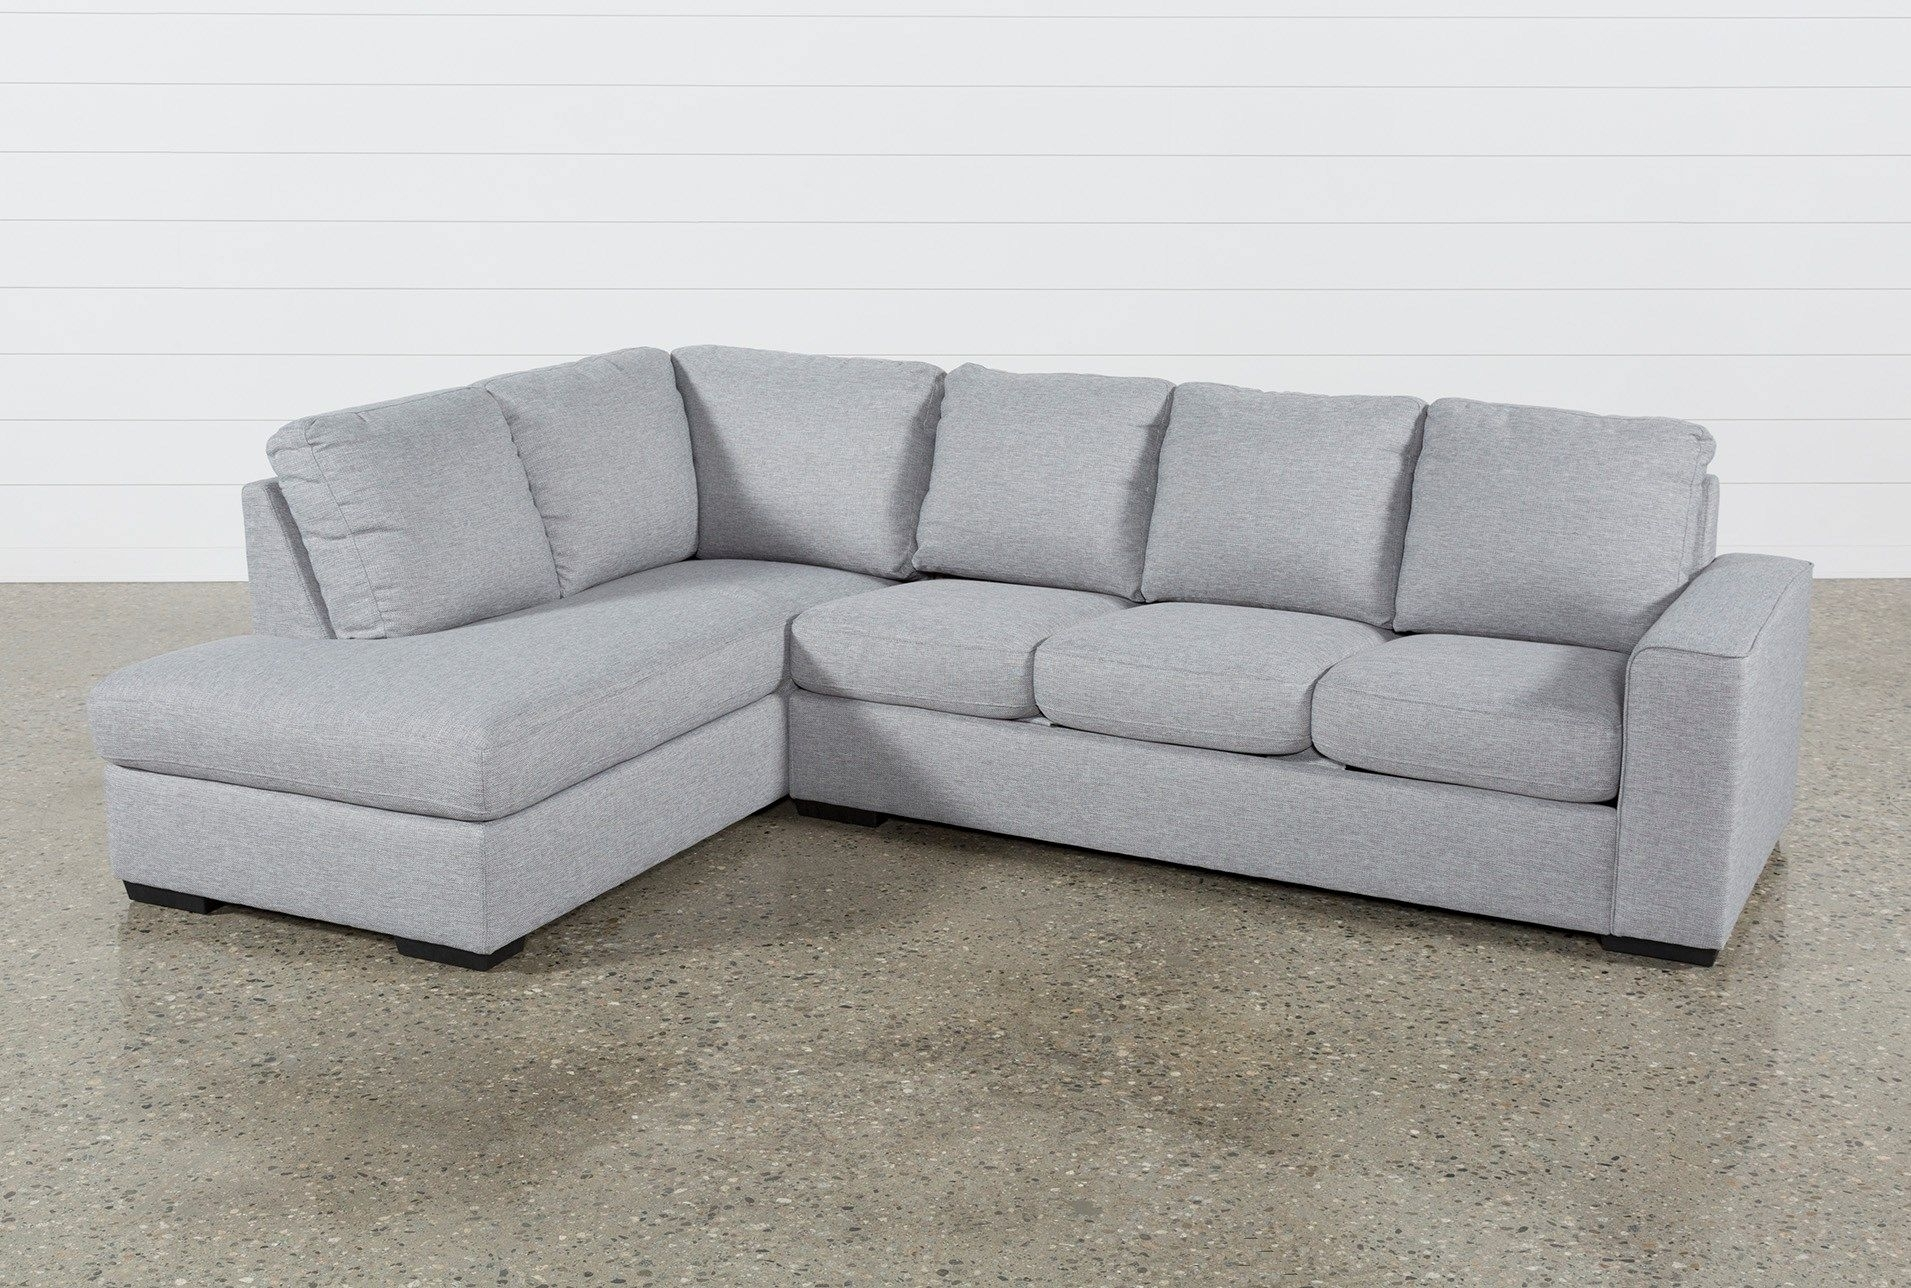 Lucy Grey 2 Piece Sectional W/laf Chaise | Tx House | Pinterest Throughout Lucy Grey 2 Piece Sectionals With Laf Chaise (View 1 of 25)